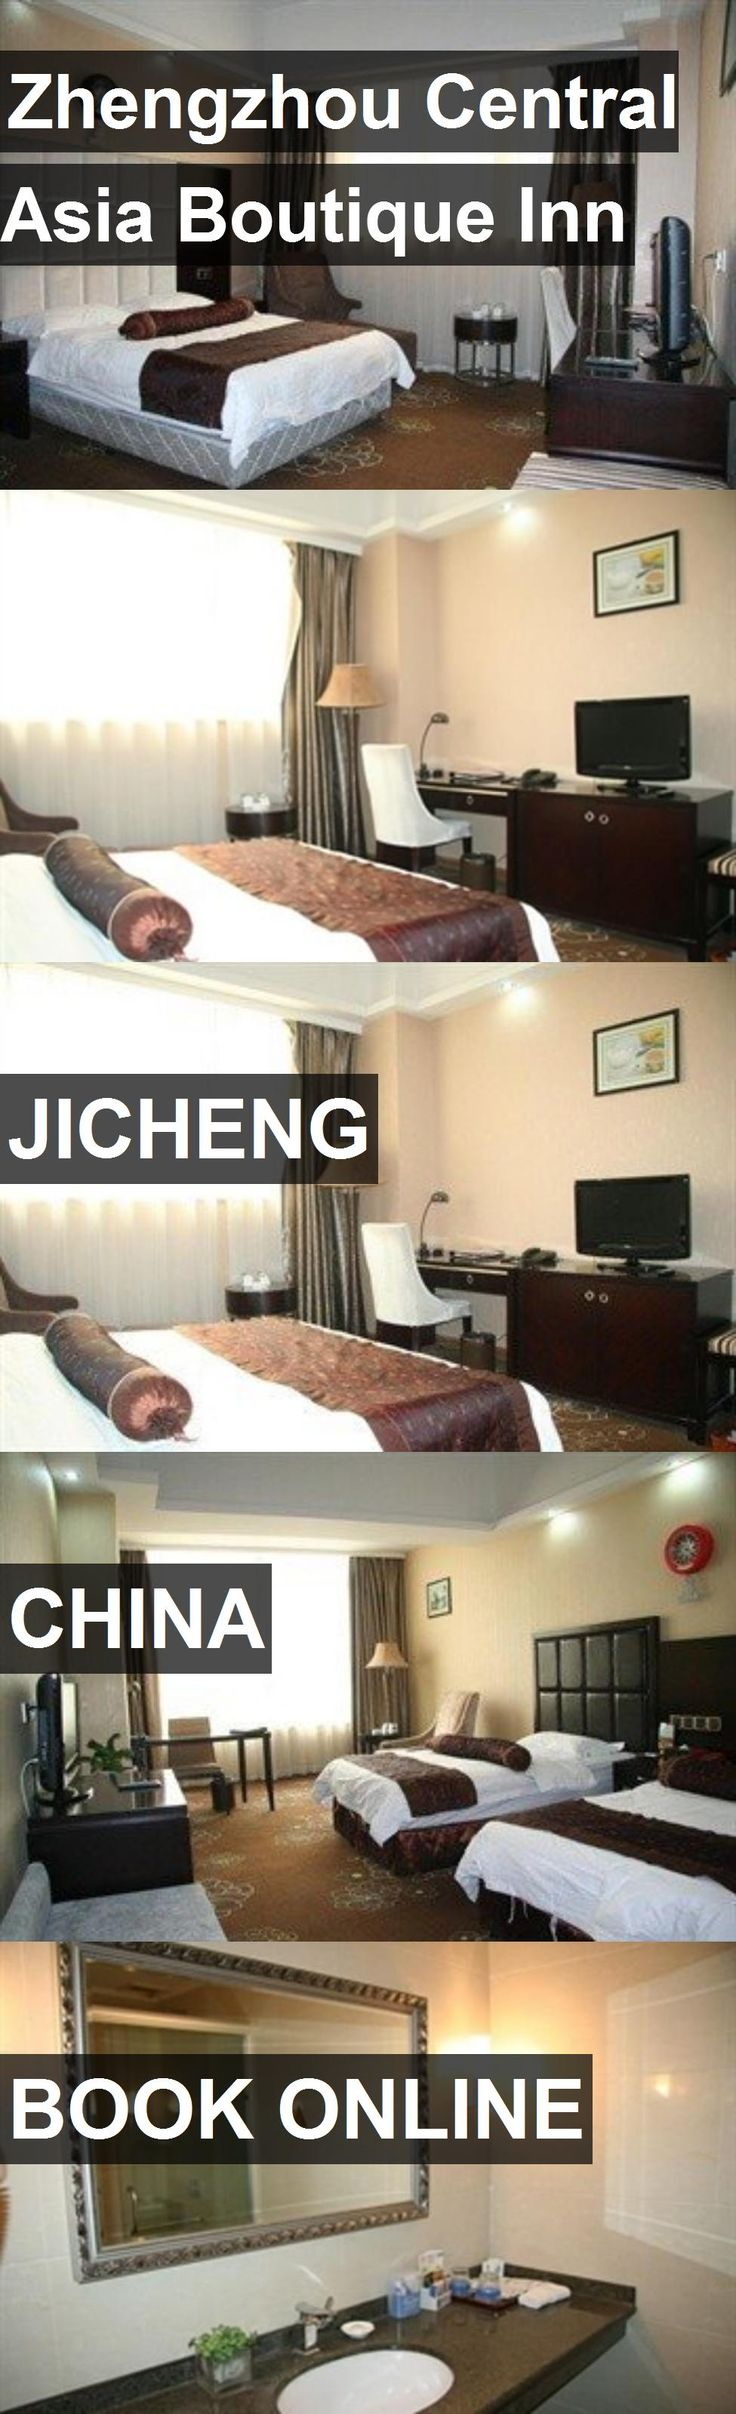 Hotel Zhengzhou Central Asia Boutique Inn in Jicheng, China. For more information, photos, reviews and best prices please follow the link. #China #Jicheng #travel #vacation #hotel